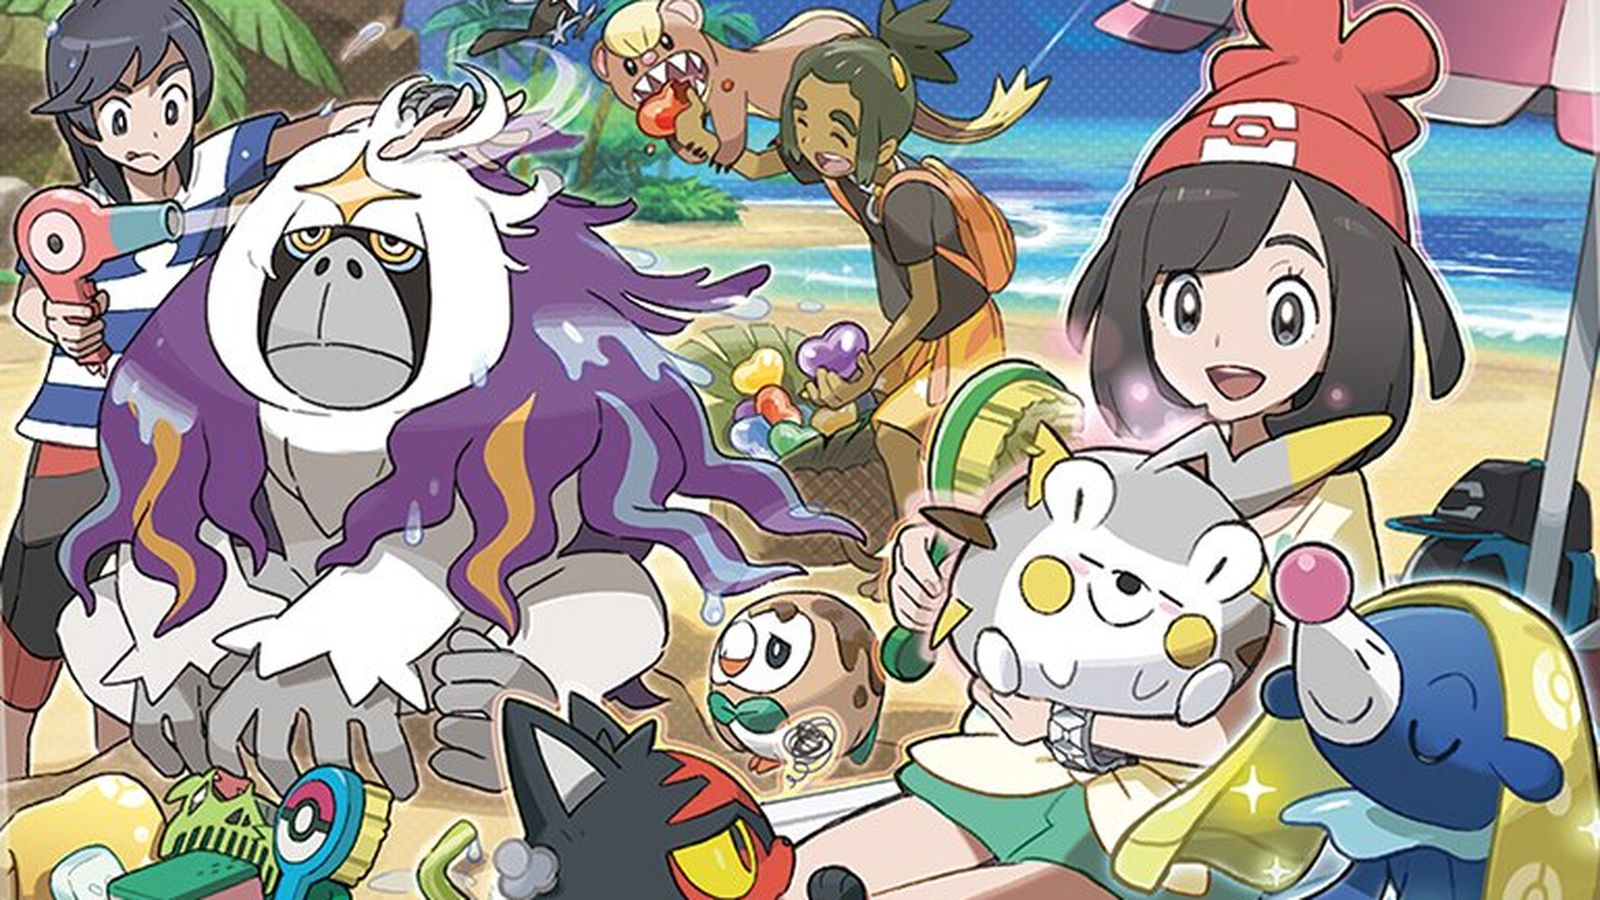 Pokémon chief says approach to games needs to change if brought to Switch